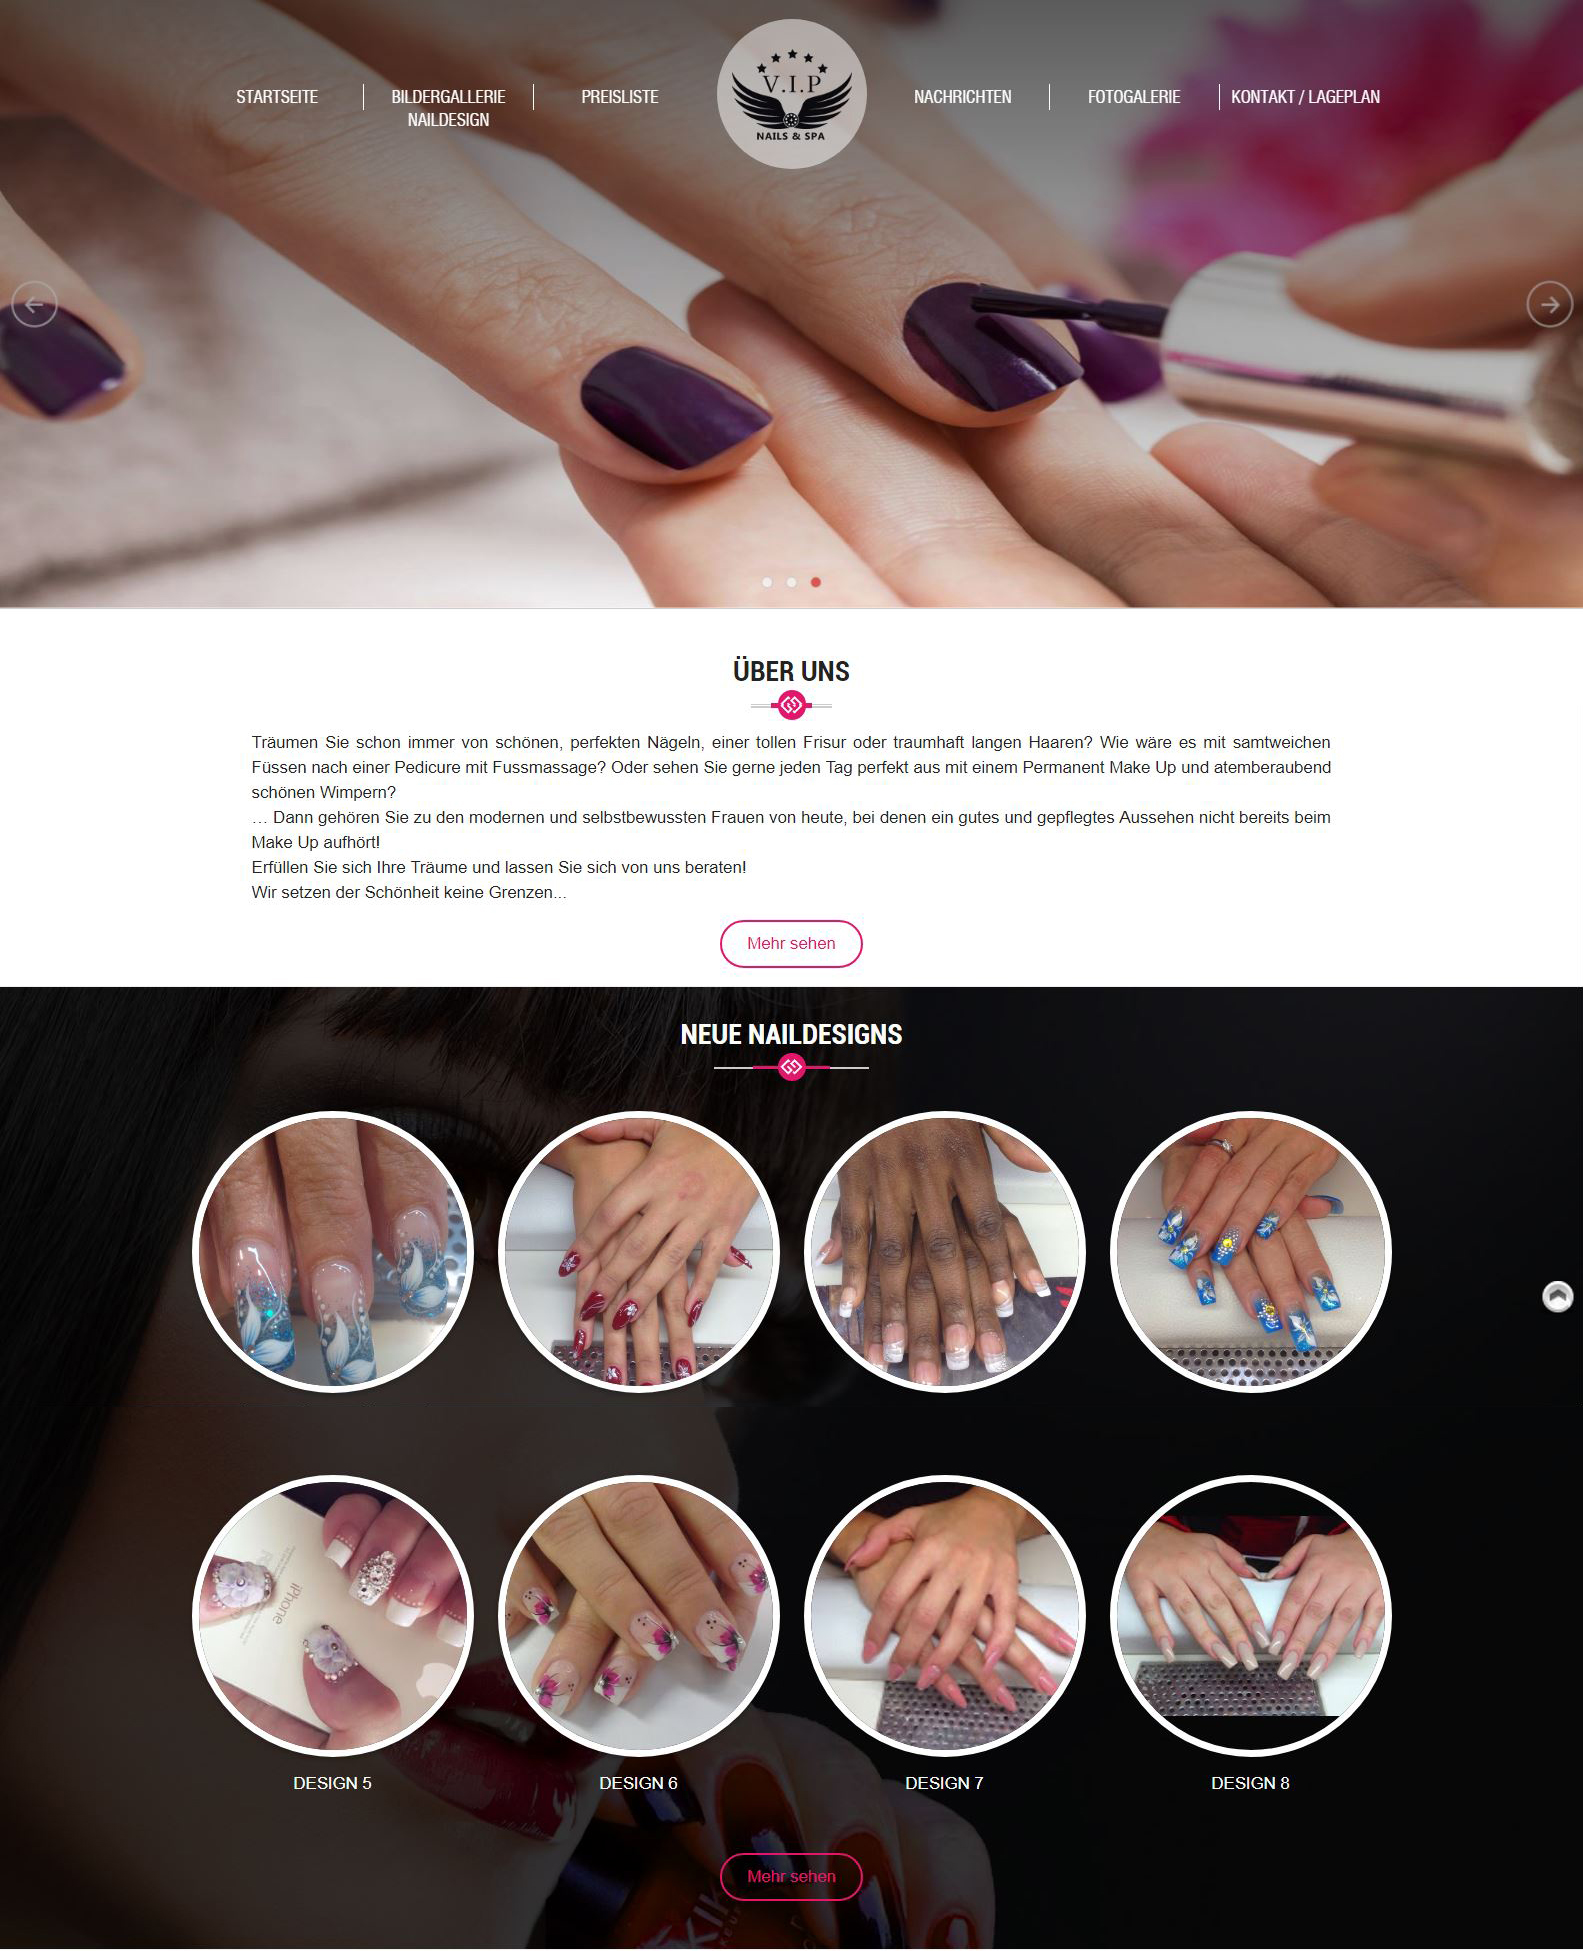 Thiết kế website Vip Nails